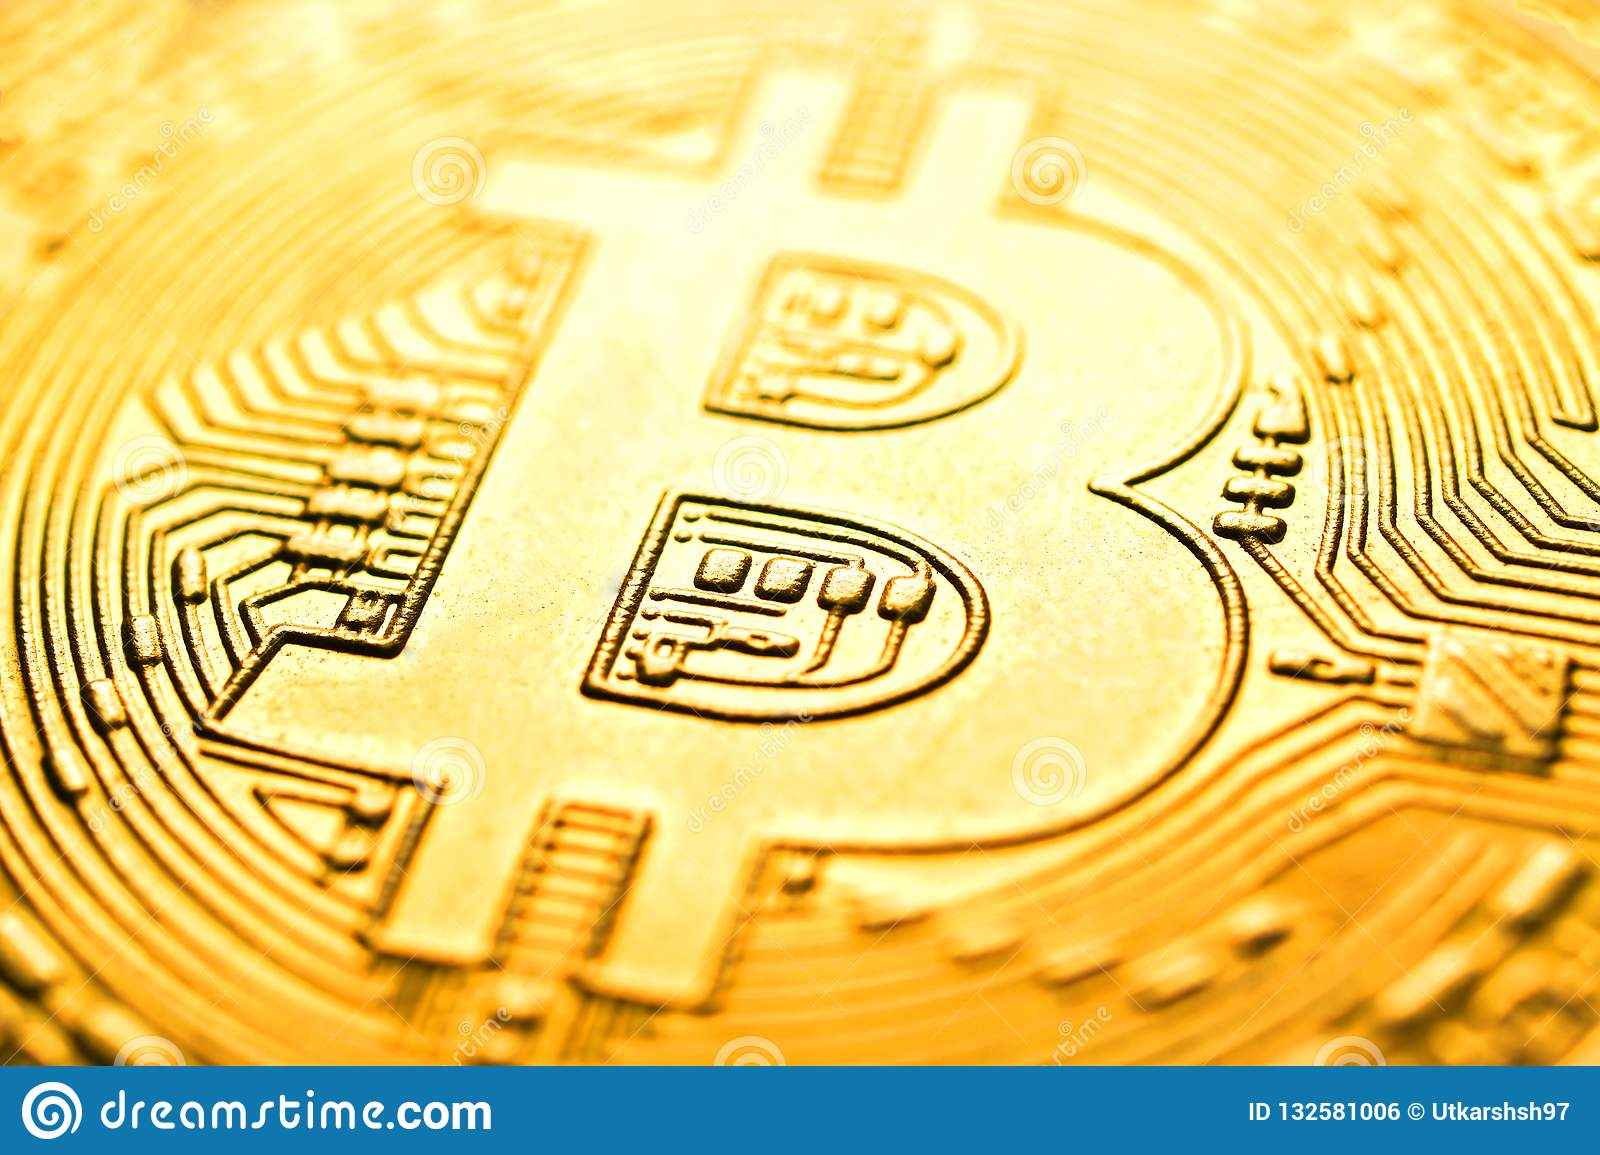 Bitcoin macro image for background , abstract